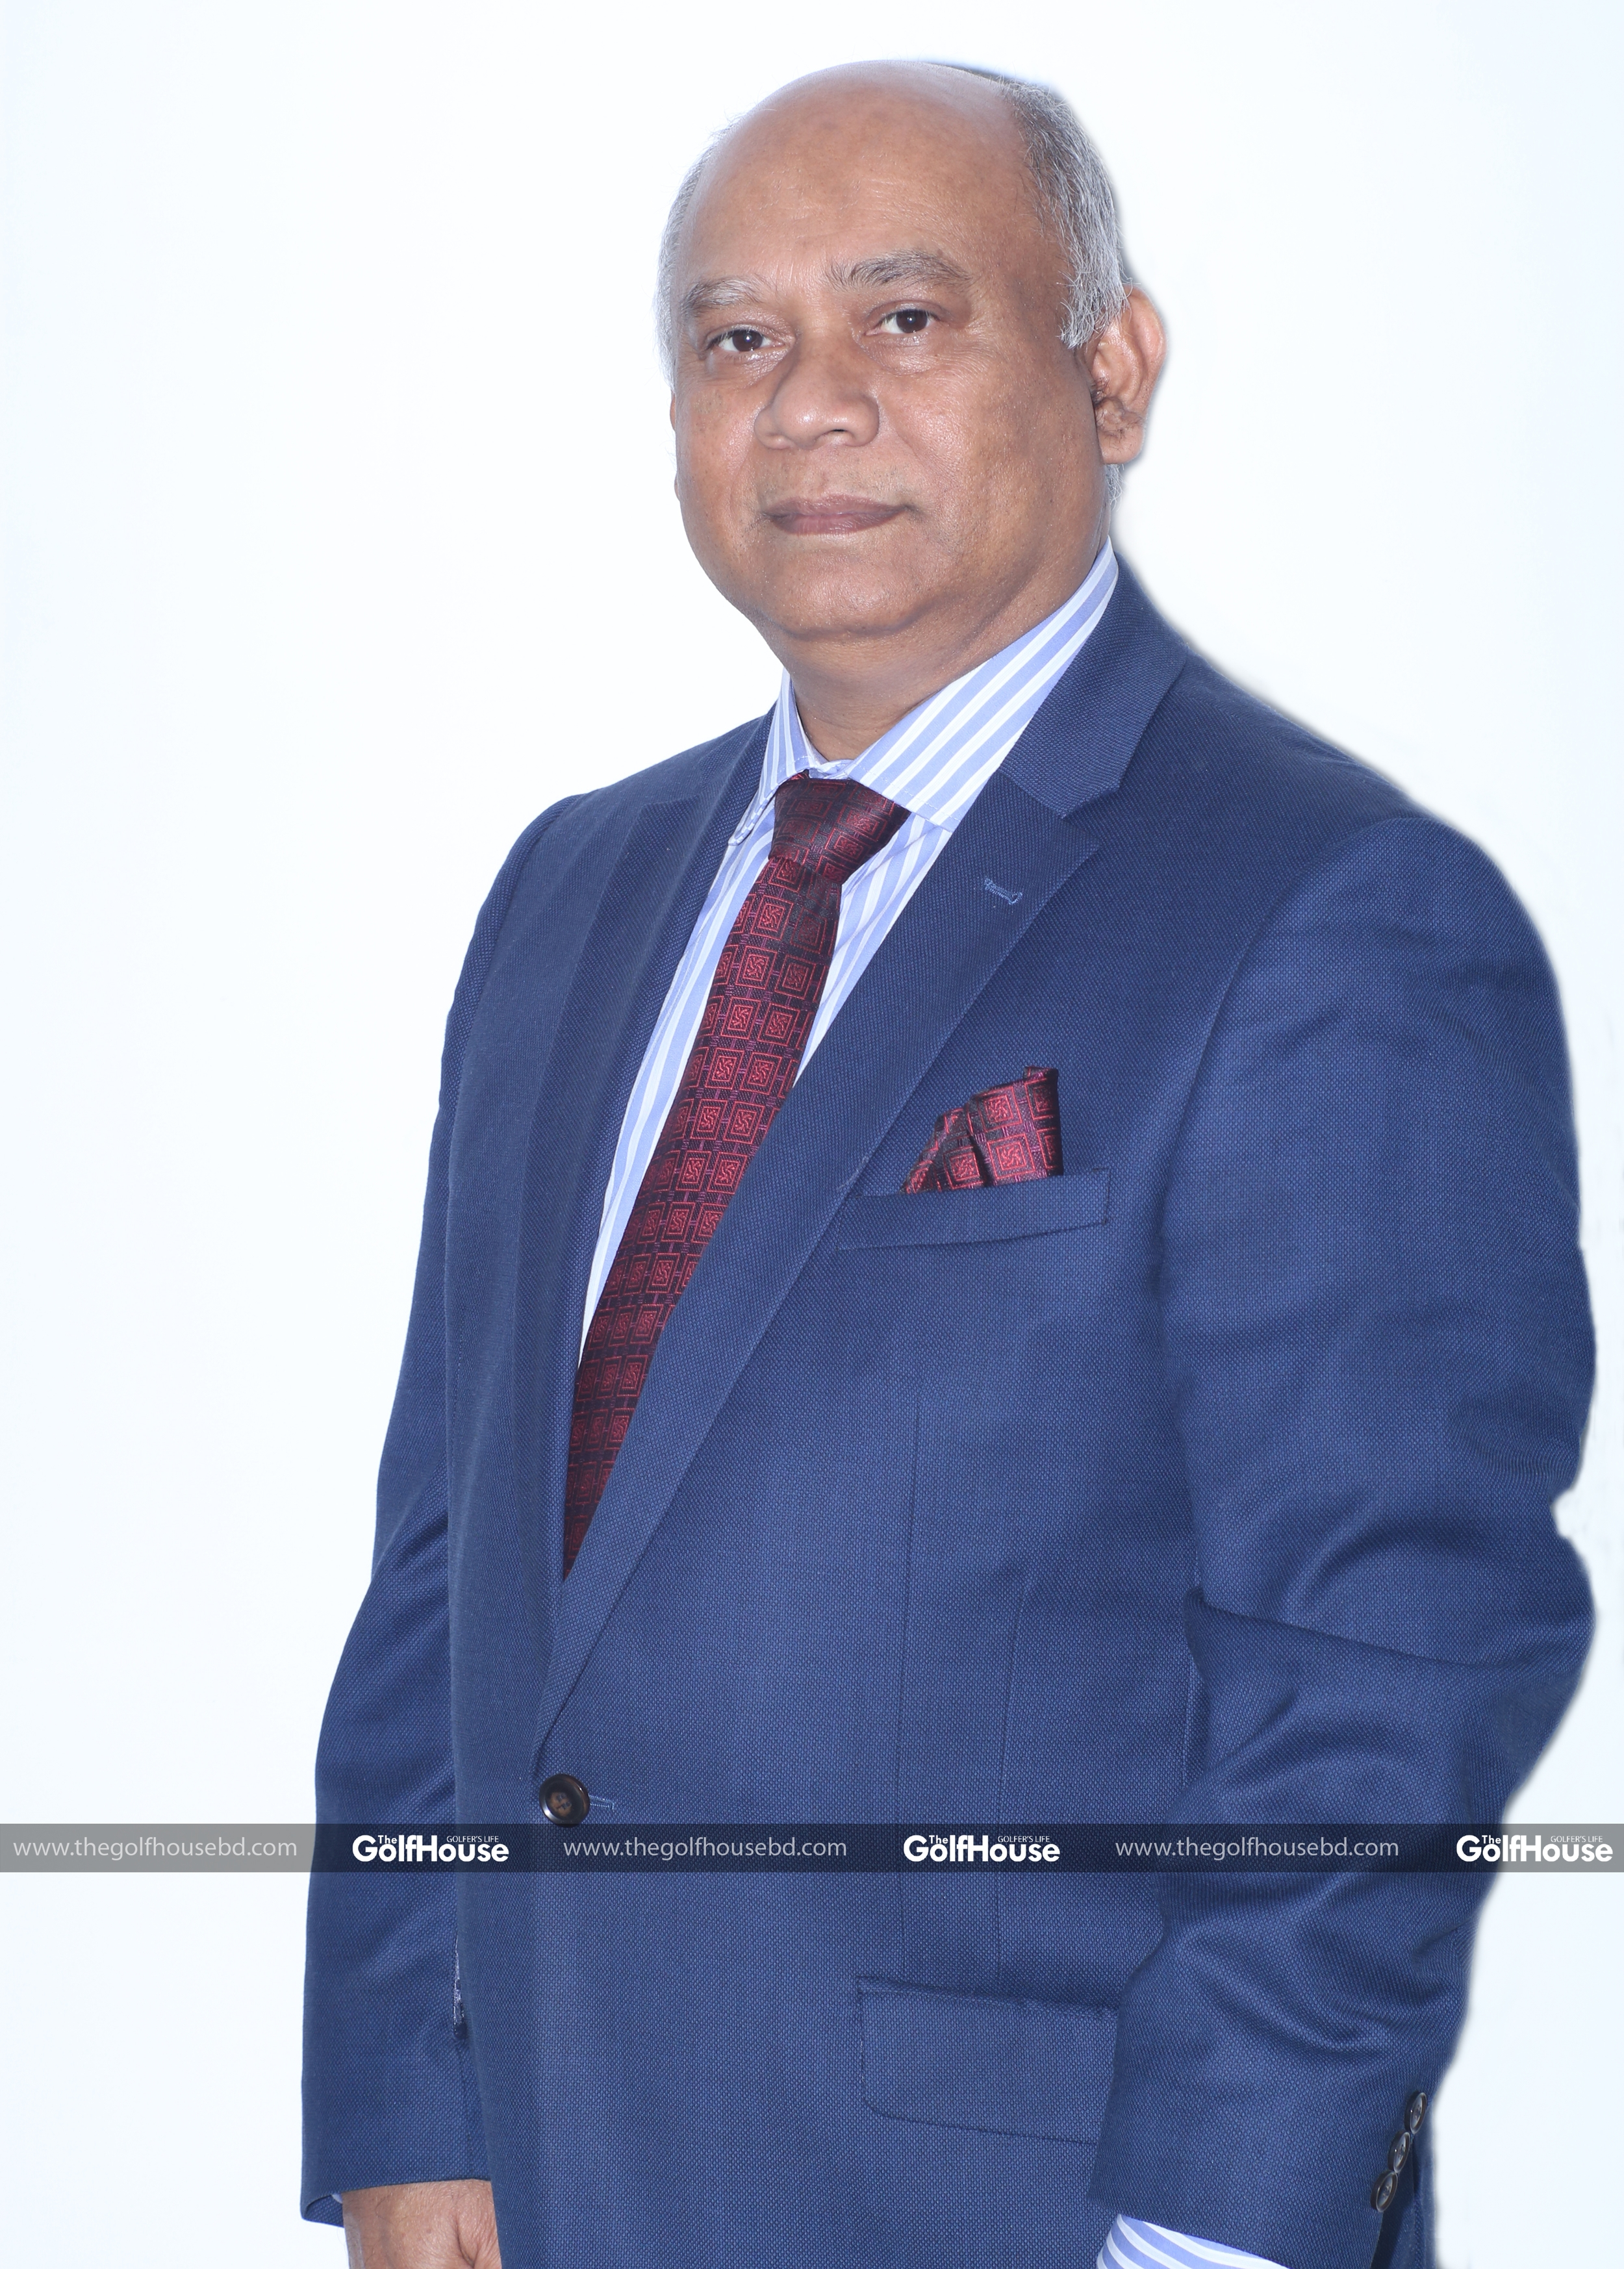 Moshiur_Rahman_Chowdhury_was_appointed_as_President_&_Managing_Director_of_AB_Bank_Ltd_ the_first_private_commercial_bank_of_the_country_on_May_9_2017.